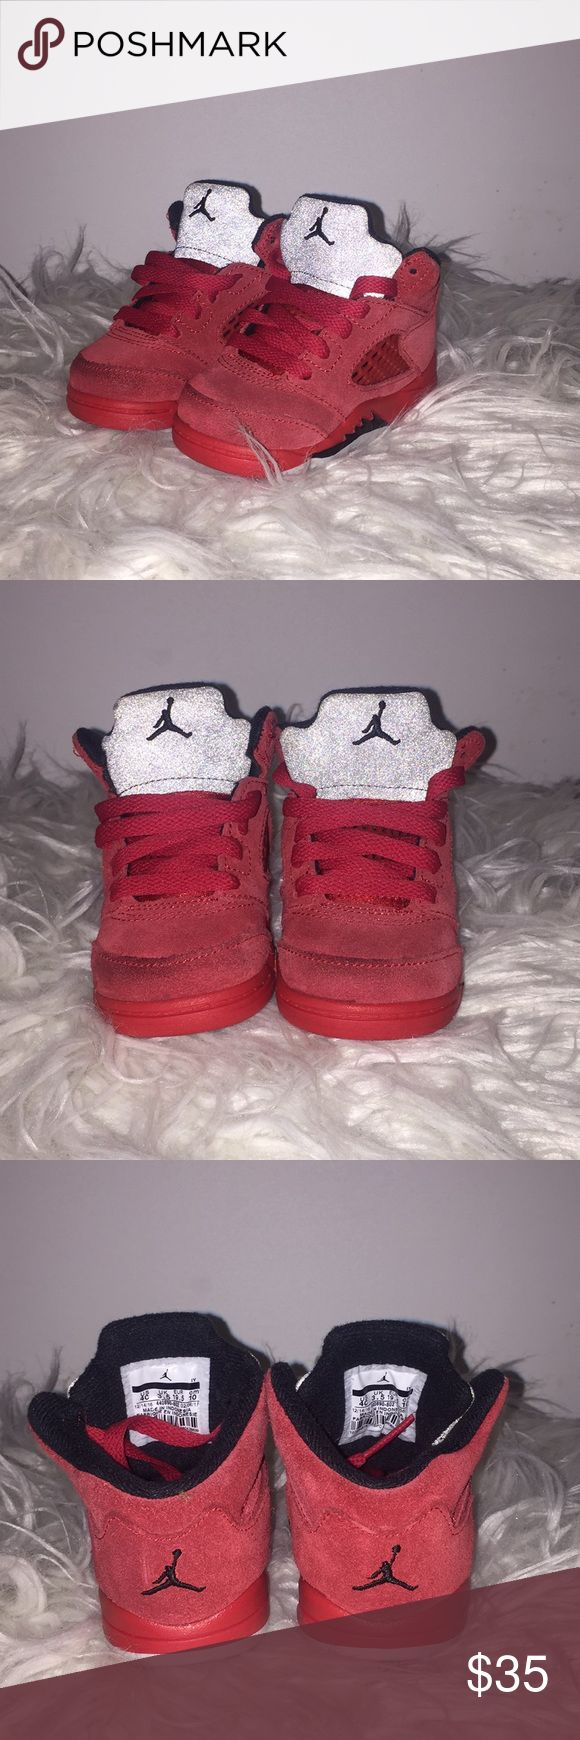 Toddler Jordan 5s Gently Used - University red / black -- some light scuffing on toe of shoe (suede) can be cleaned! Still in very good condition - size 4c Jordan Shoes Sneakers